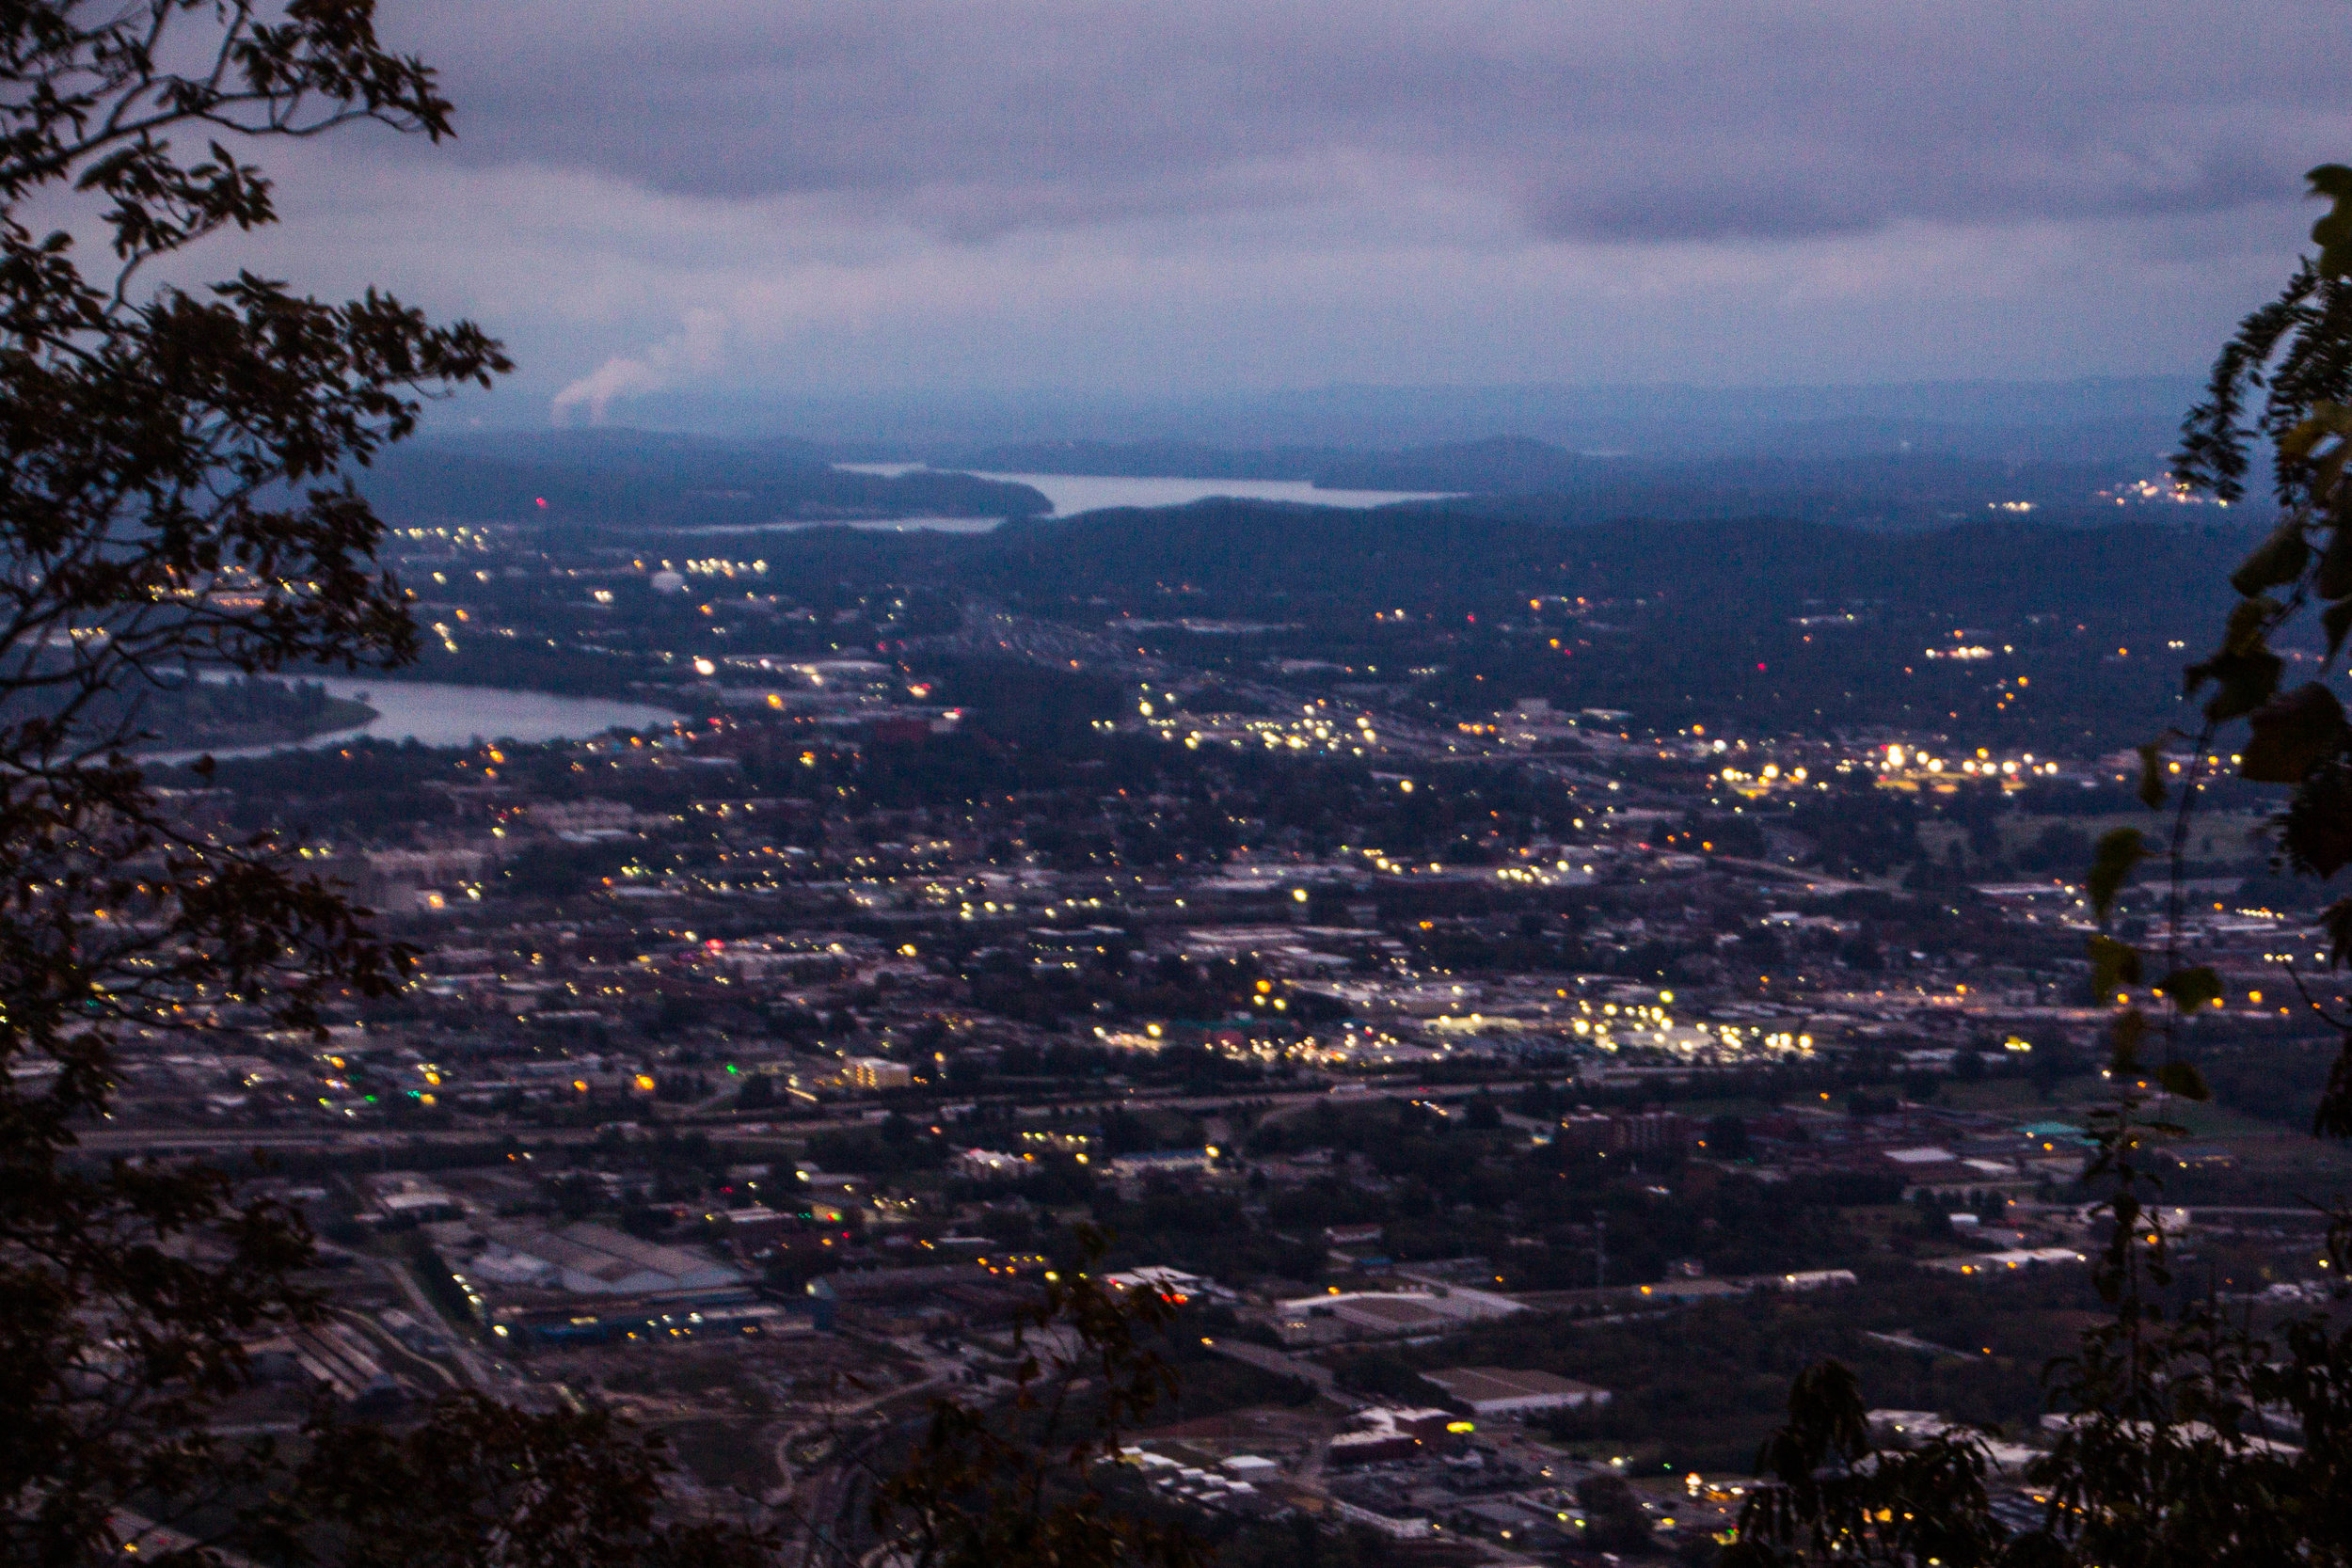 point-park-lookout-mountain-chattanooga-at-night-1.jpg